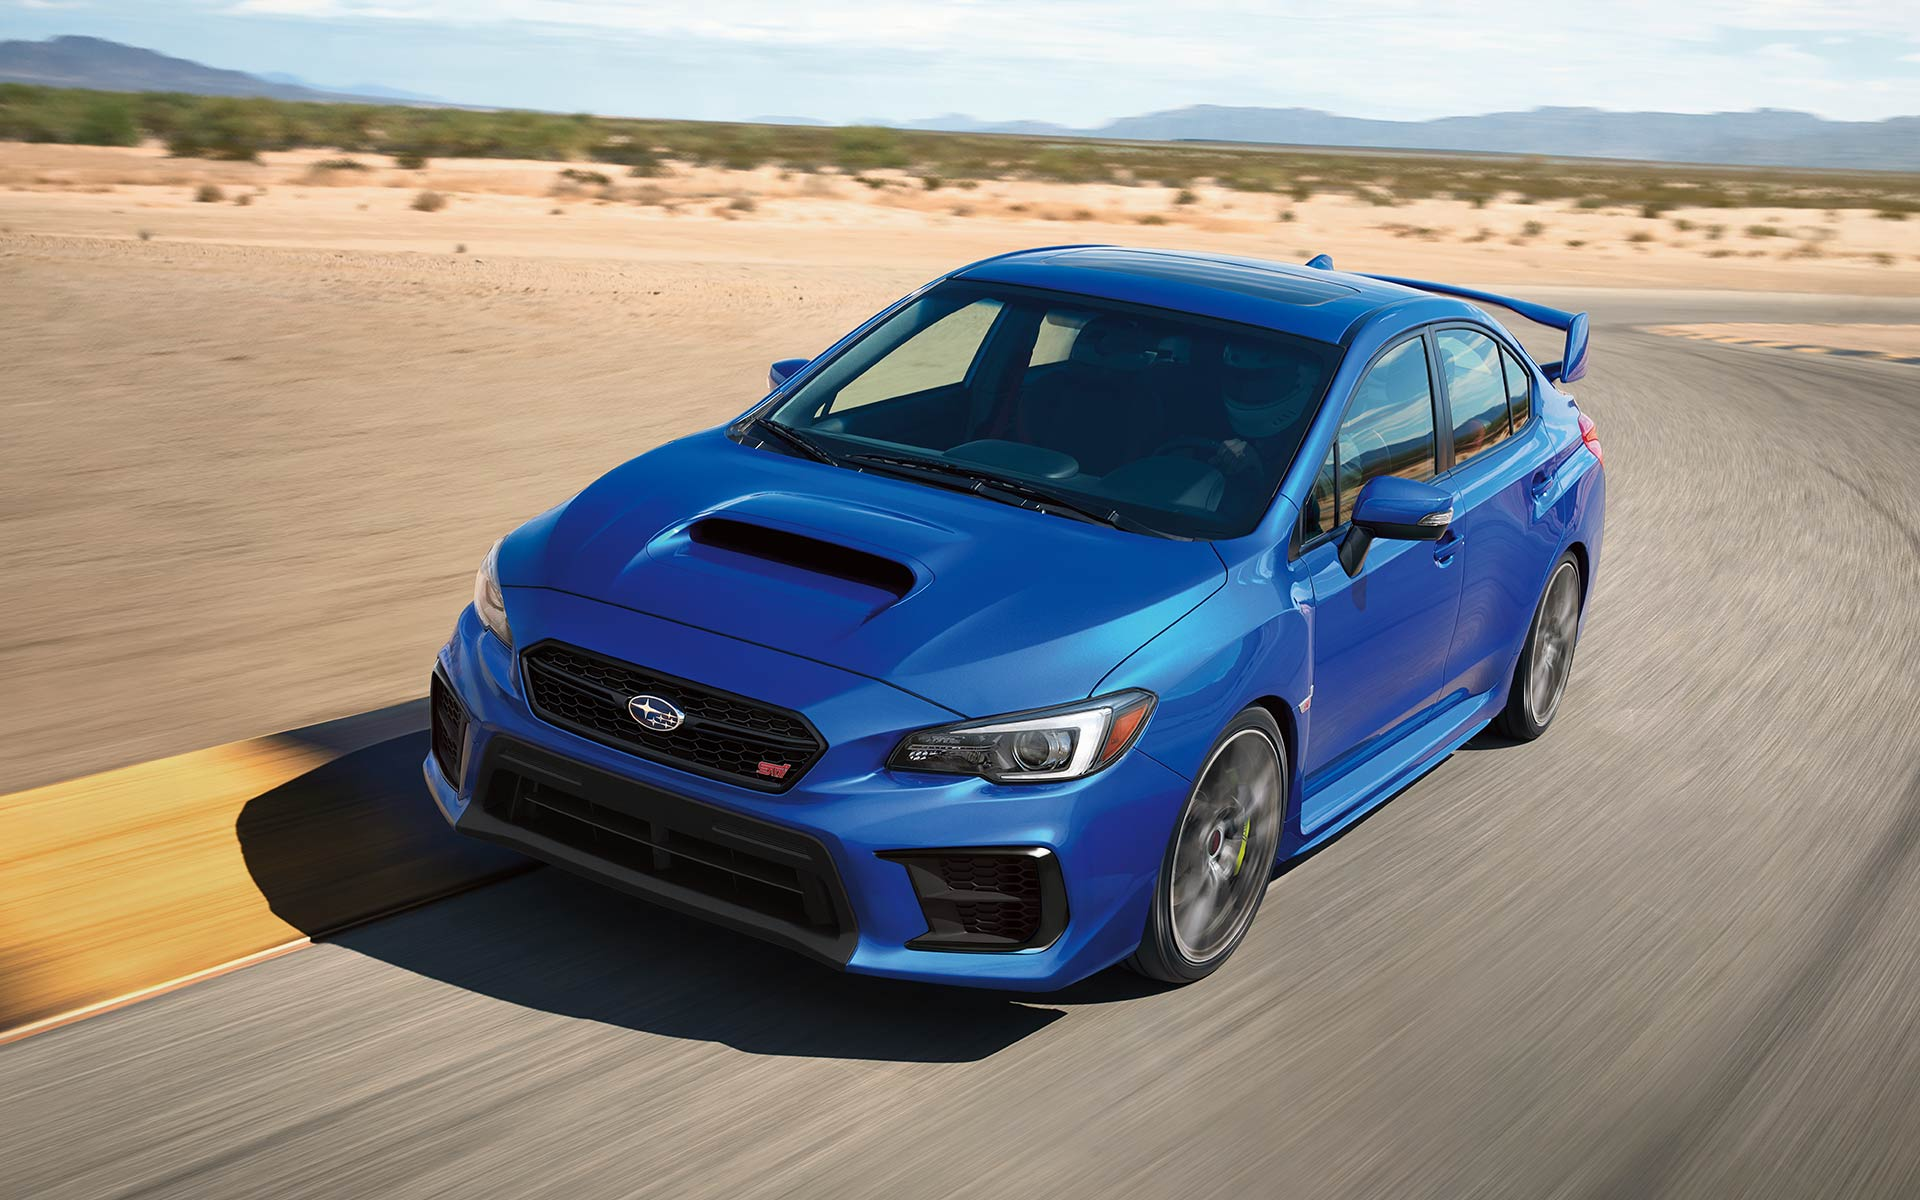 2020 WRX STI driving on track with desert and mountains in back